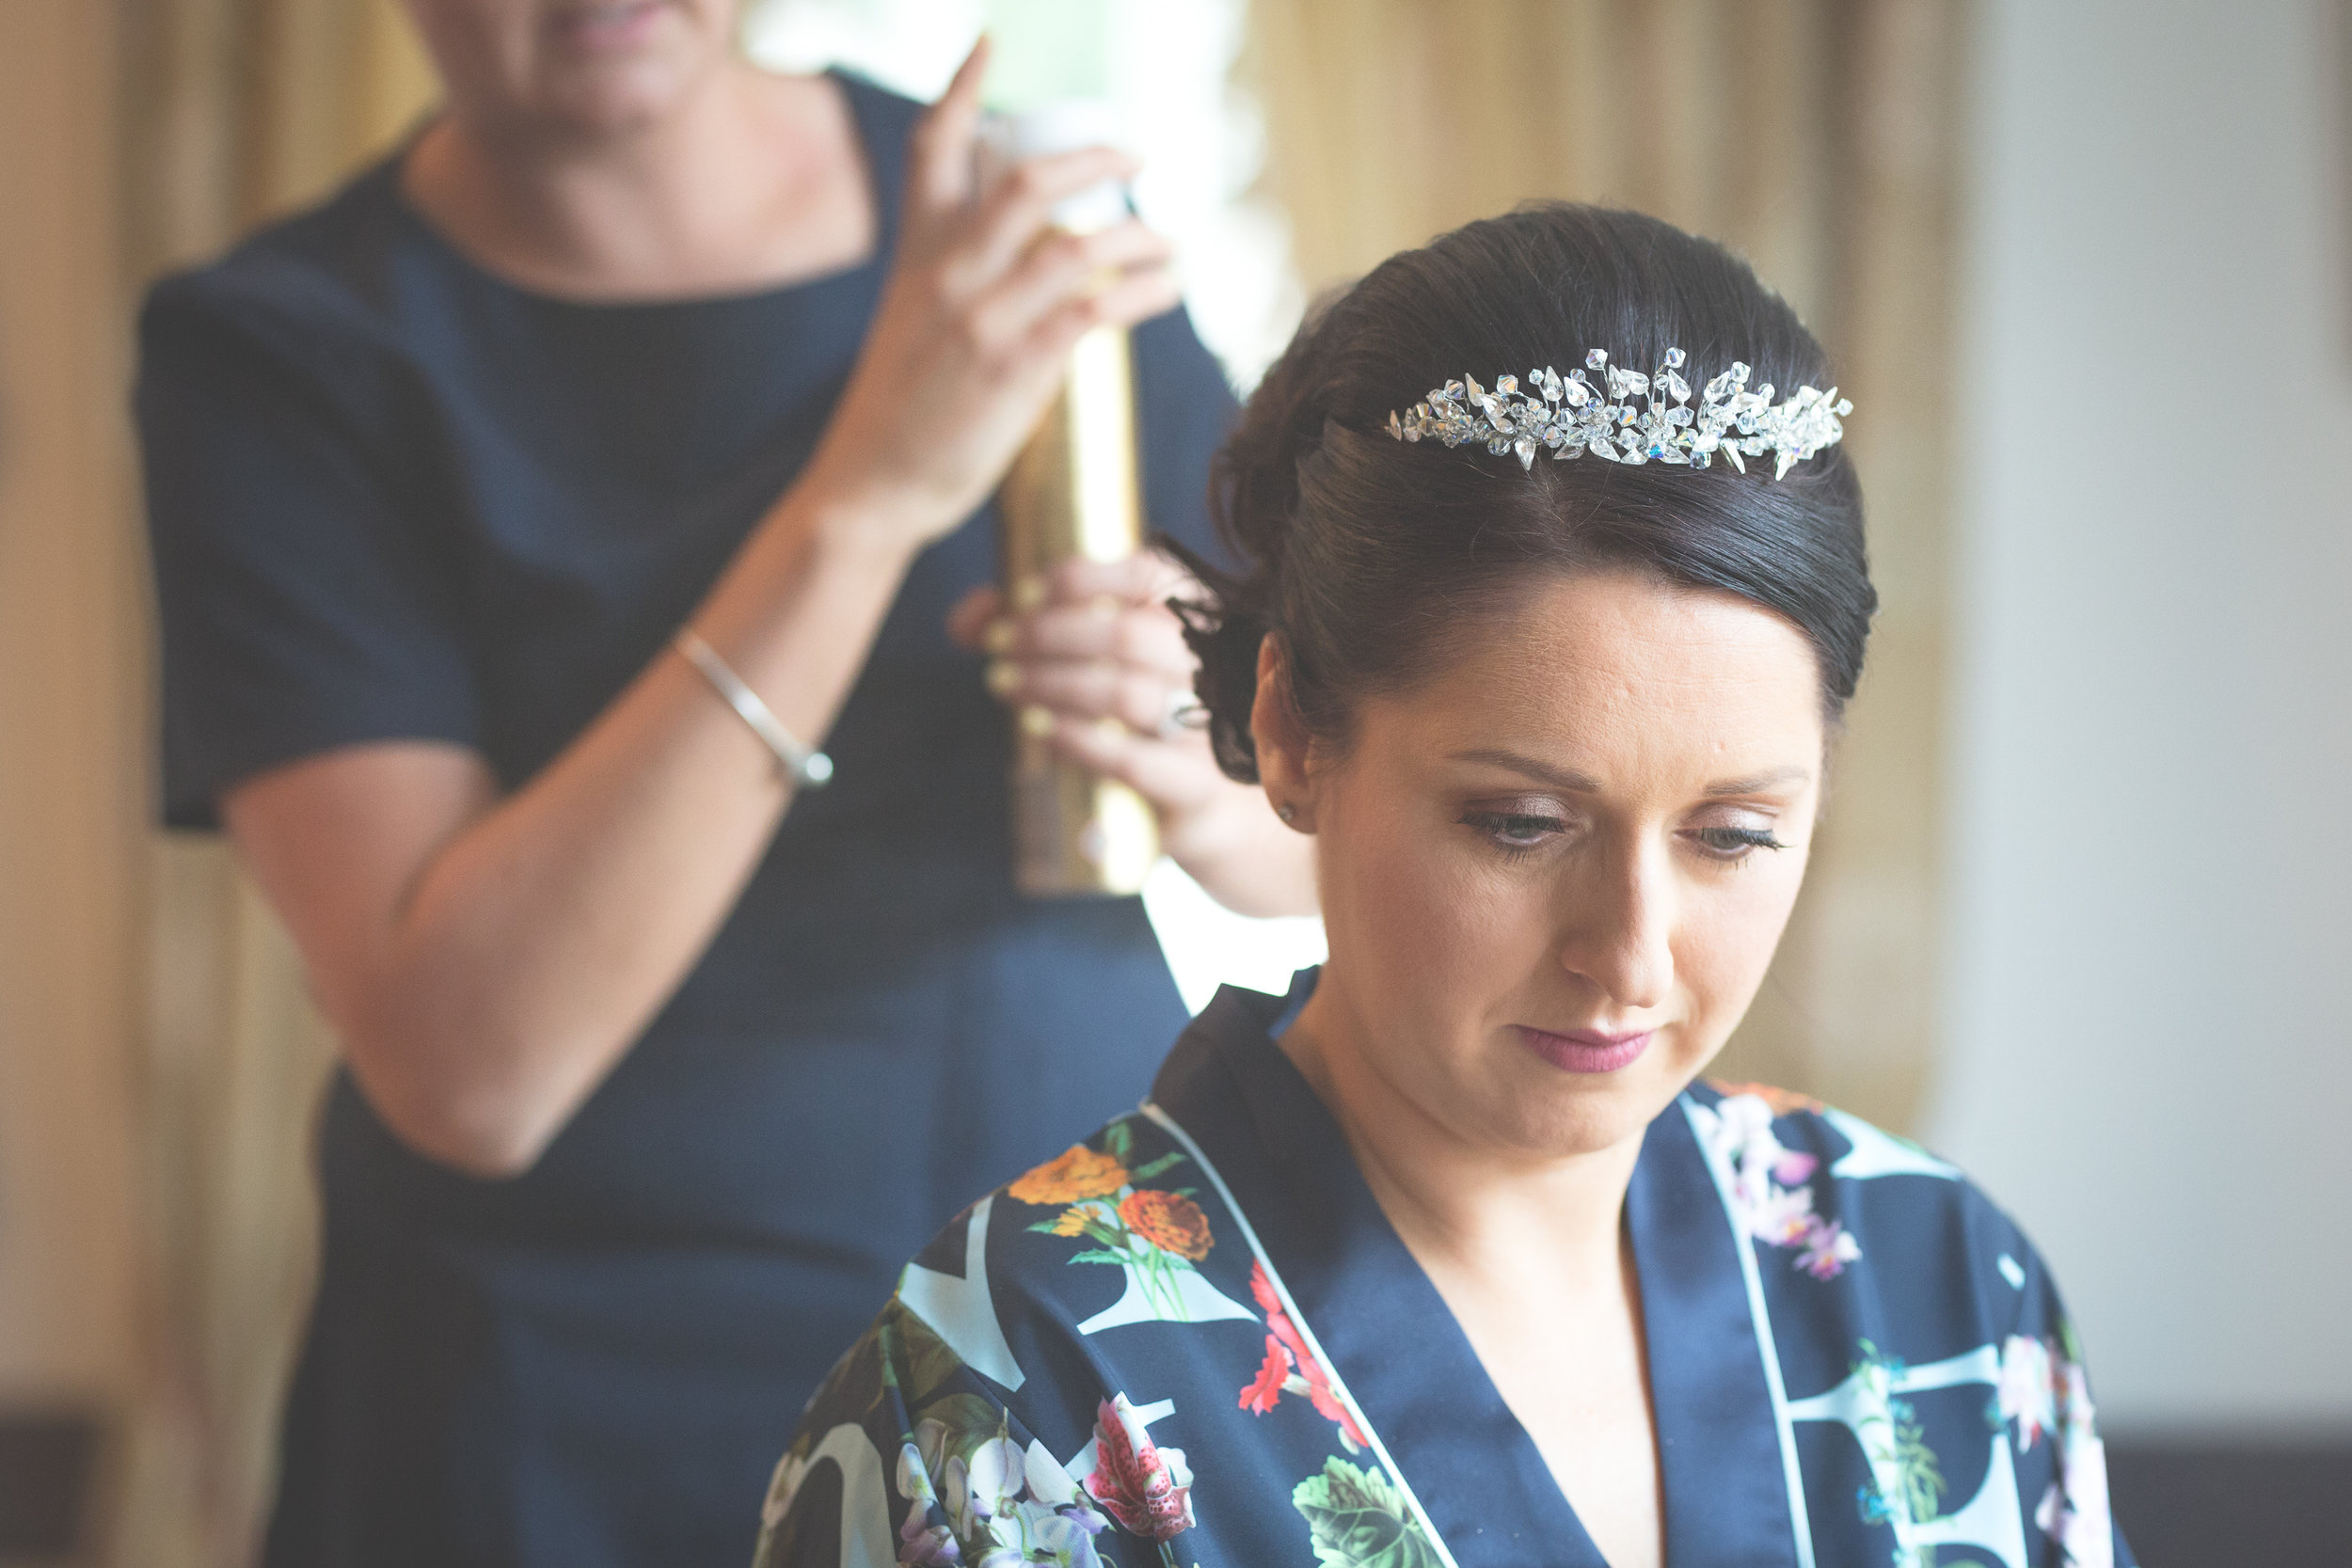 Northern Ireland Wedding Photographer | Brian McEwan | Louise & Darren-39.jpg